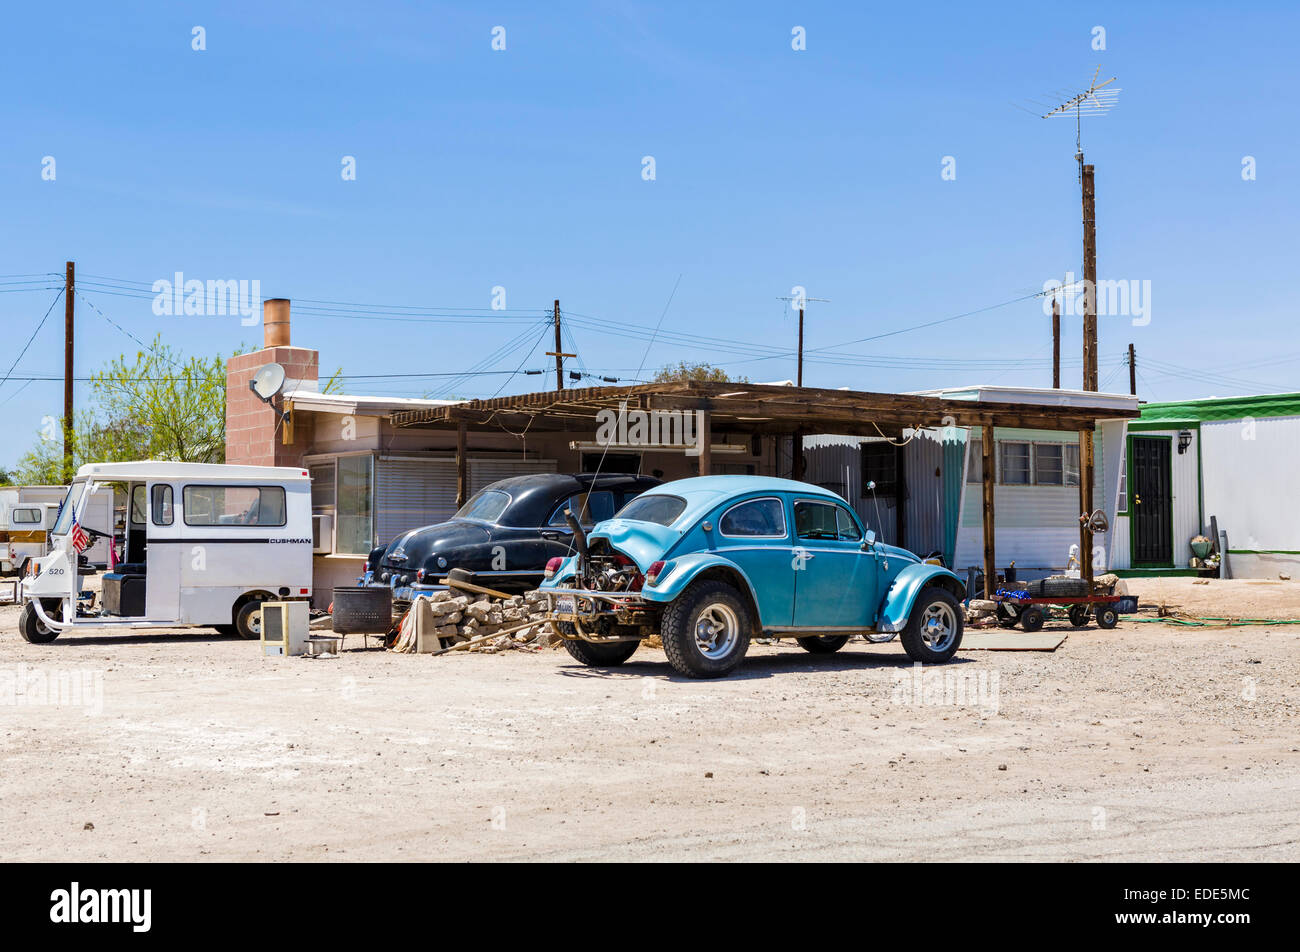 Mobile Homes At Bombay Beach On The Salton Sea Imperial County California USA